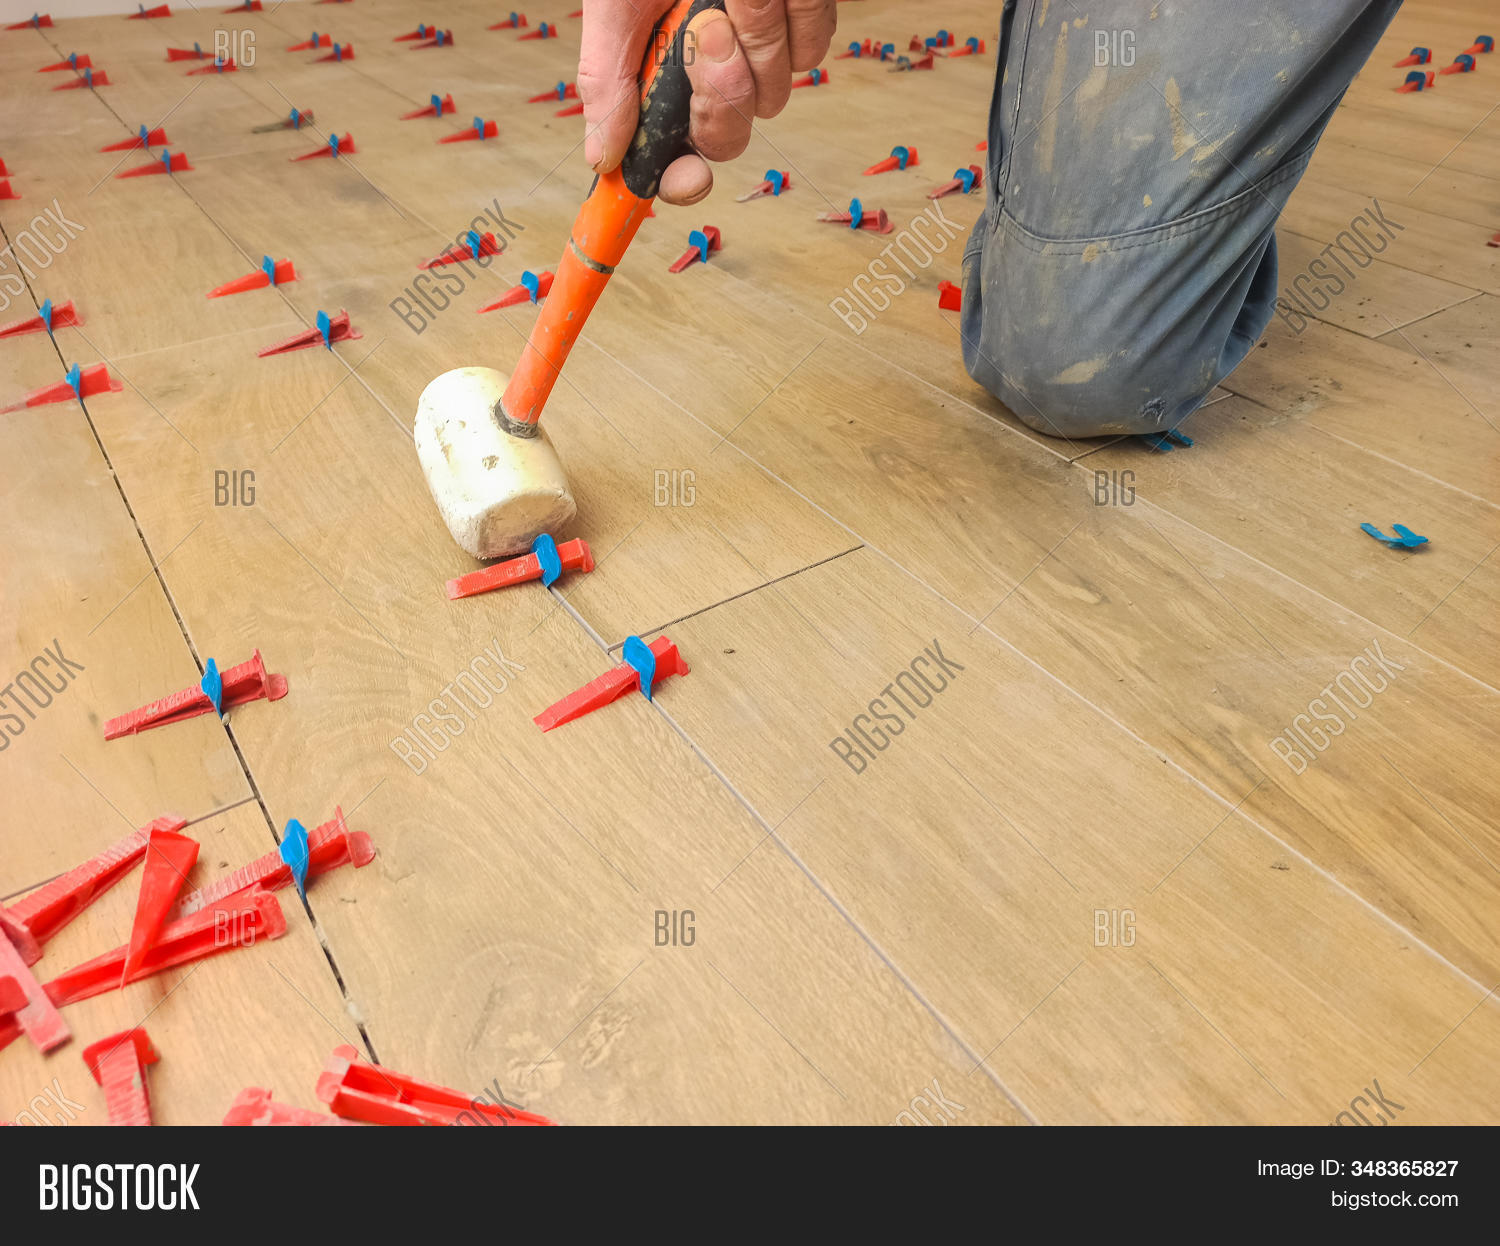 New Tile Floor Home Image Photo Free Trial Bigstock